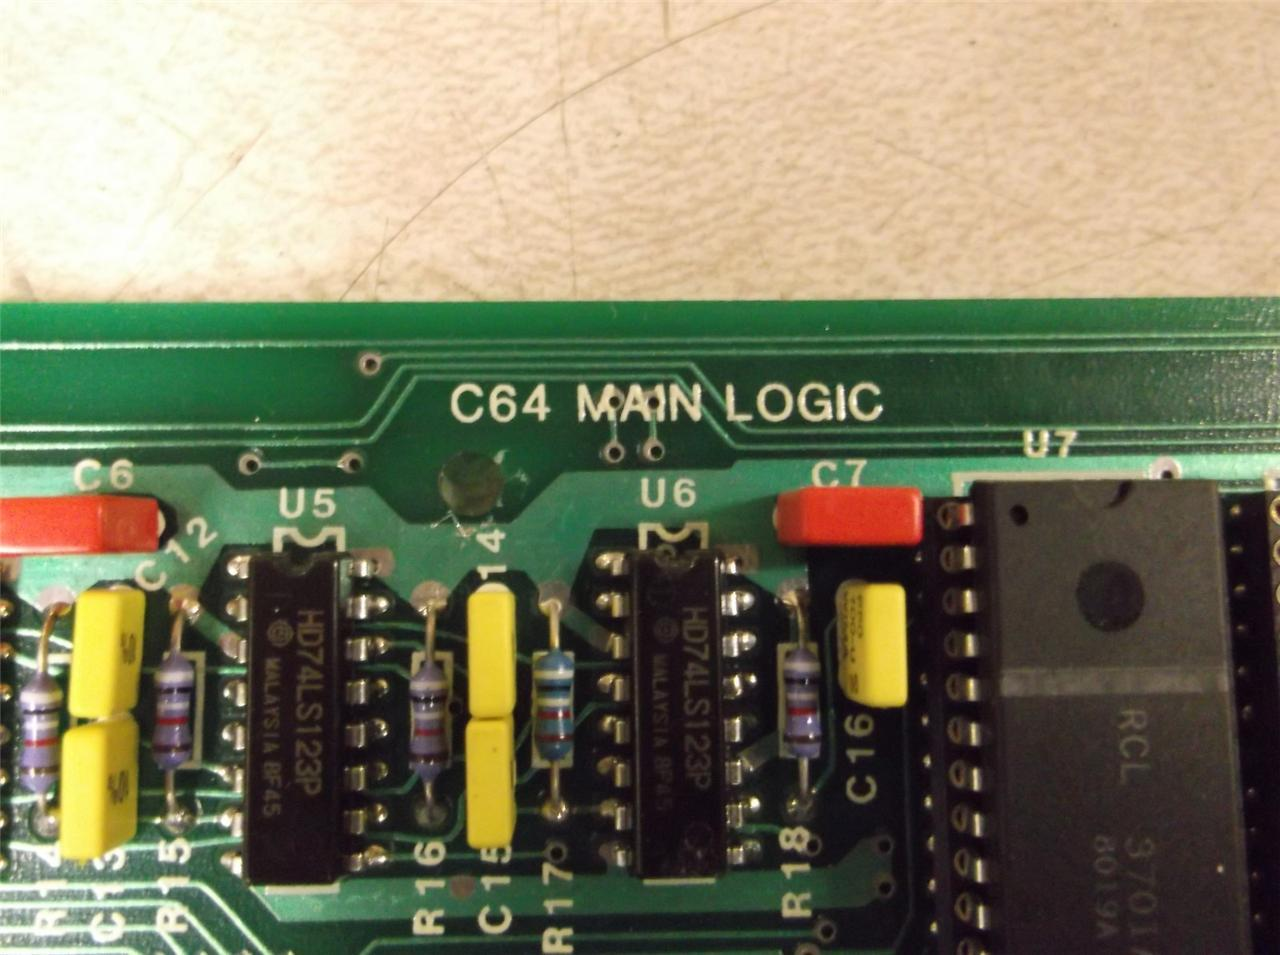 Circuit Board Commodore 64 Excellent Electrical Wiring Diagram House Circuitboardclockjpg Icon C64 Main Logic 302 030 03 Daves Industrial Surplus Llc Nintendo Entertainment System